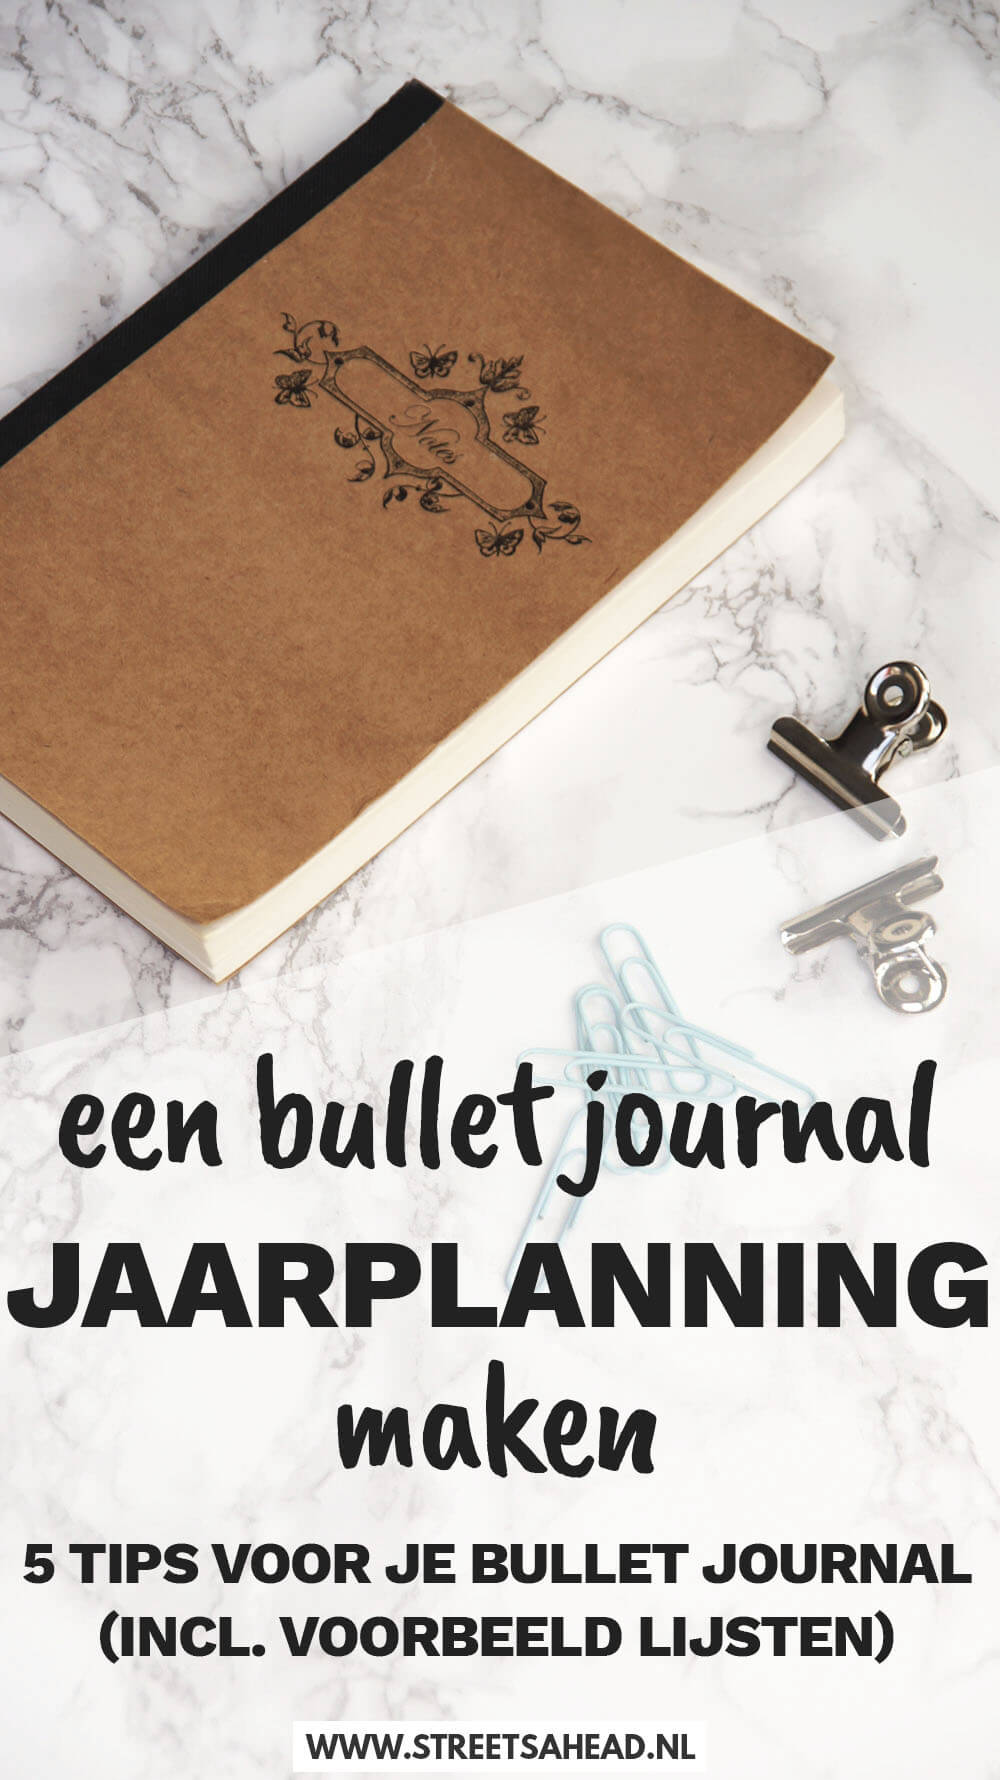 Een bullet journal jaarplanning maken: 5 tips